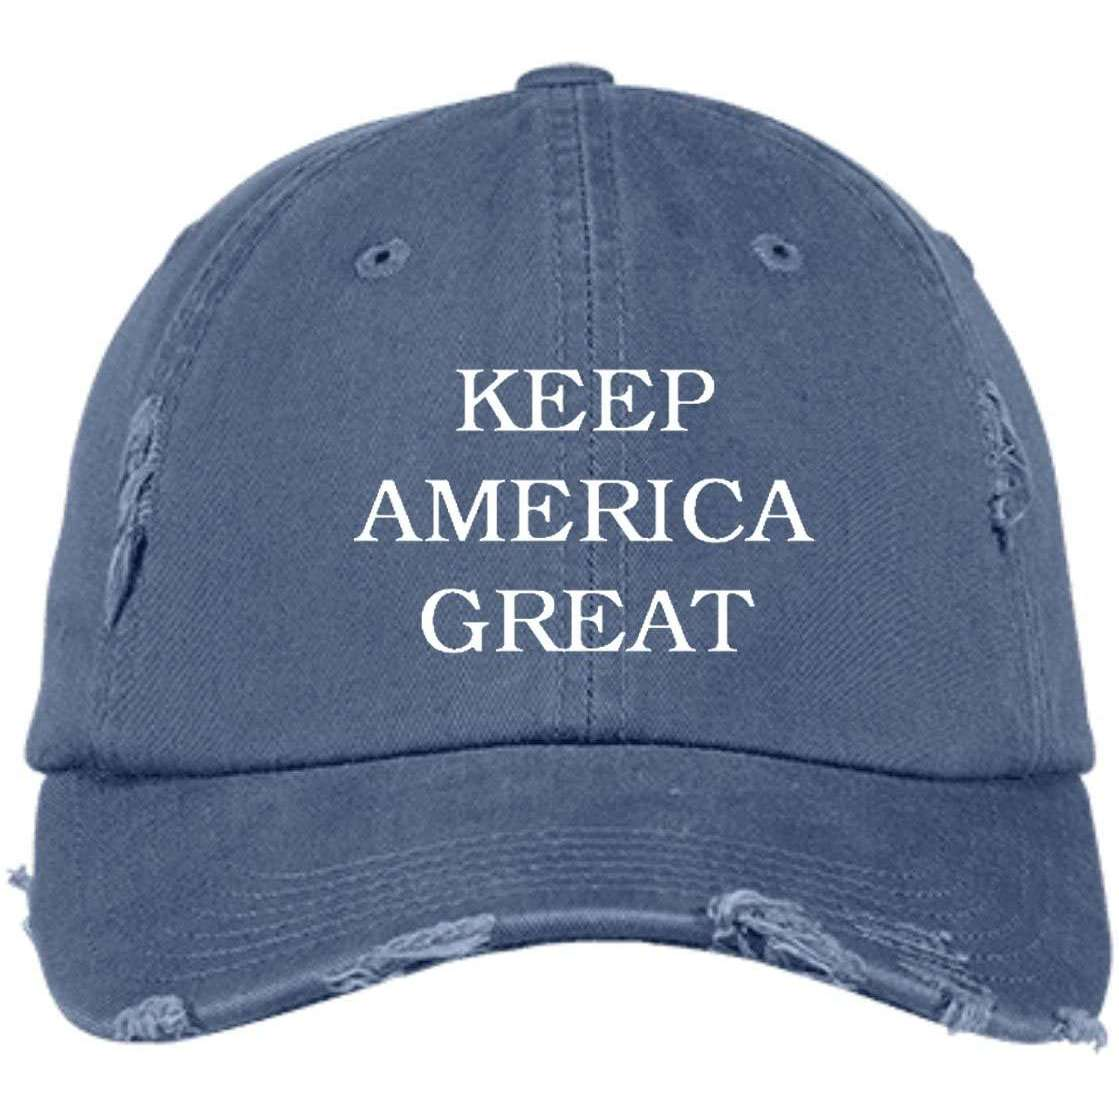 Keep America Great Distressed Dad Cap